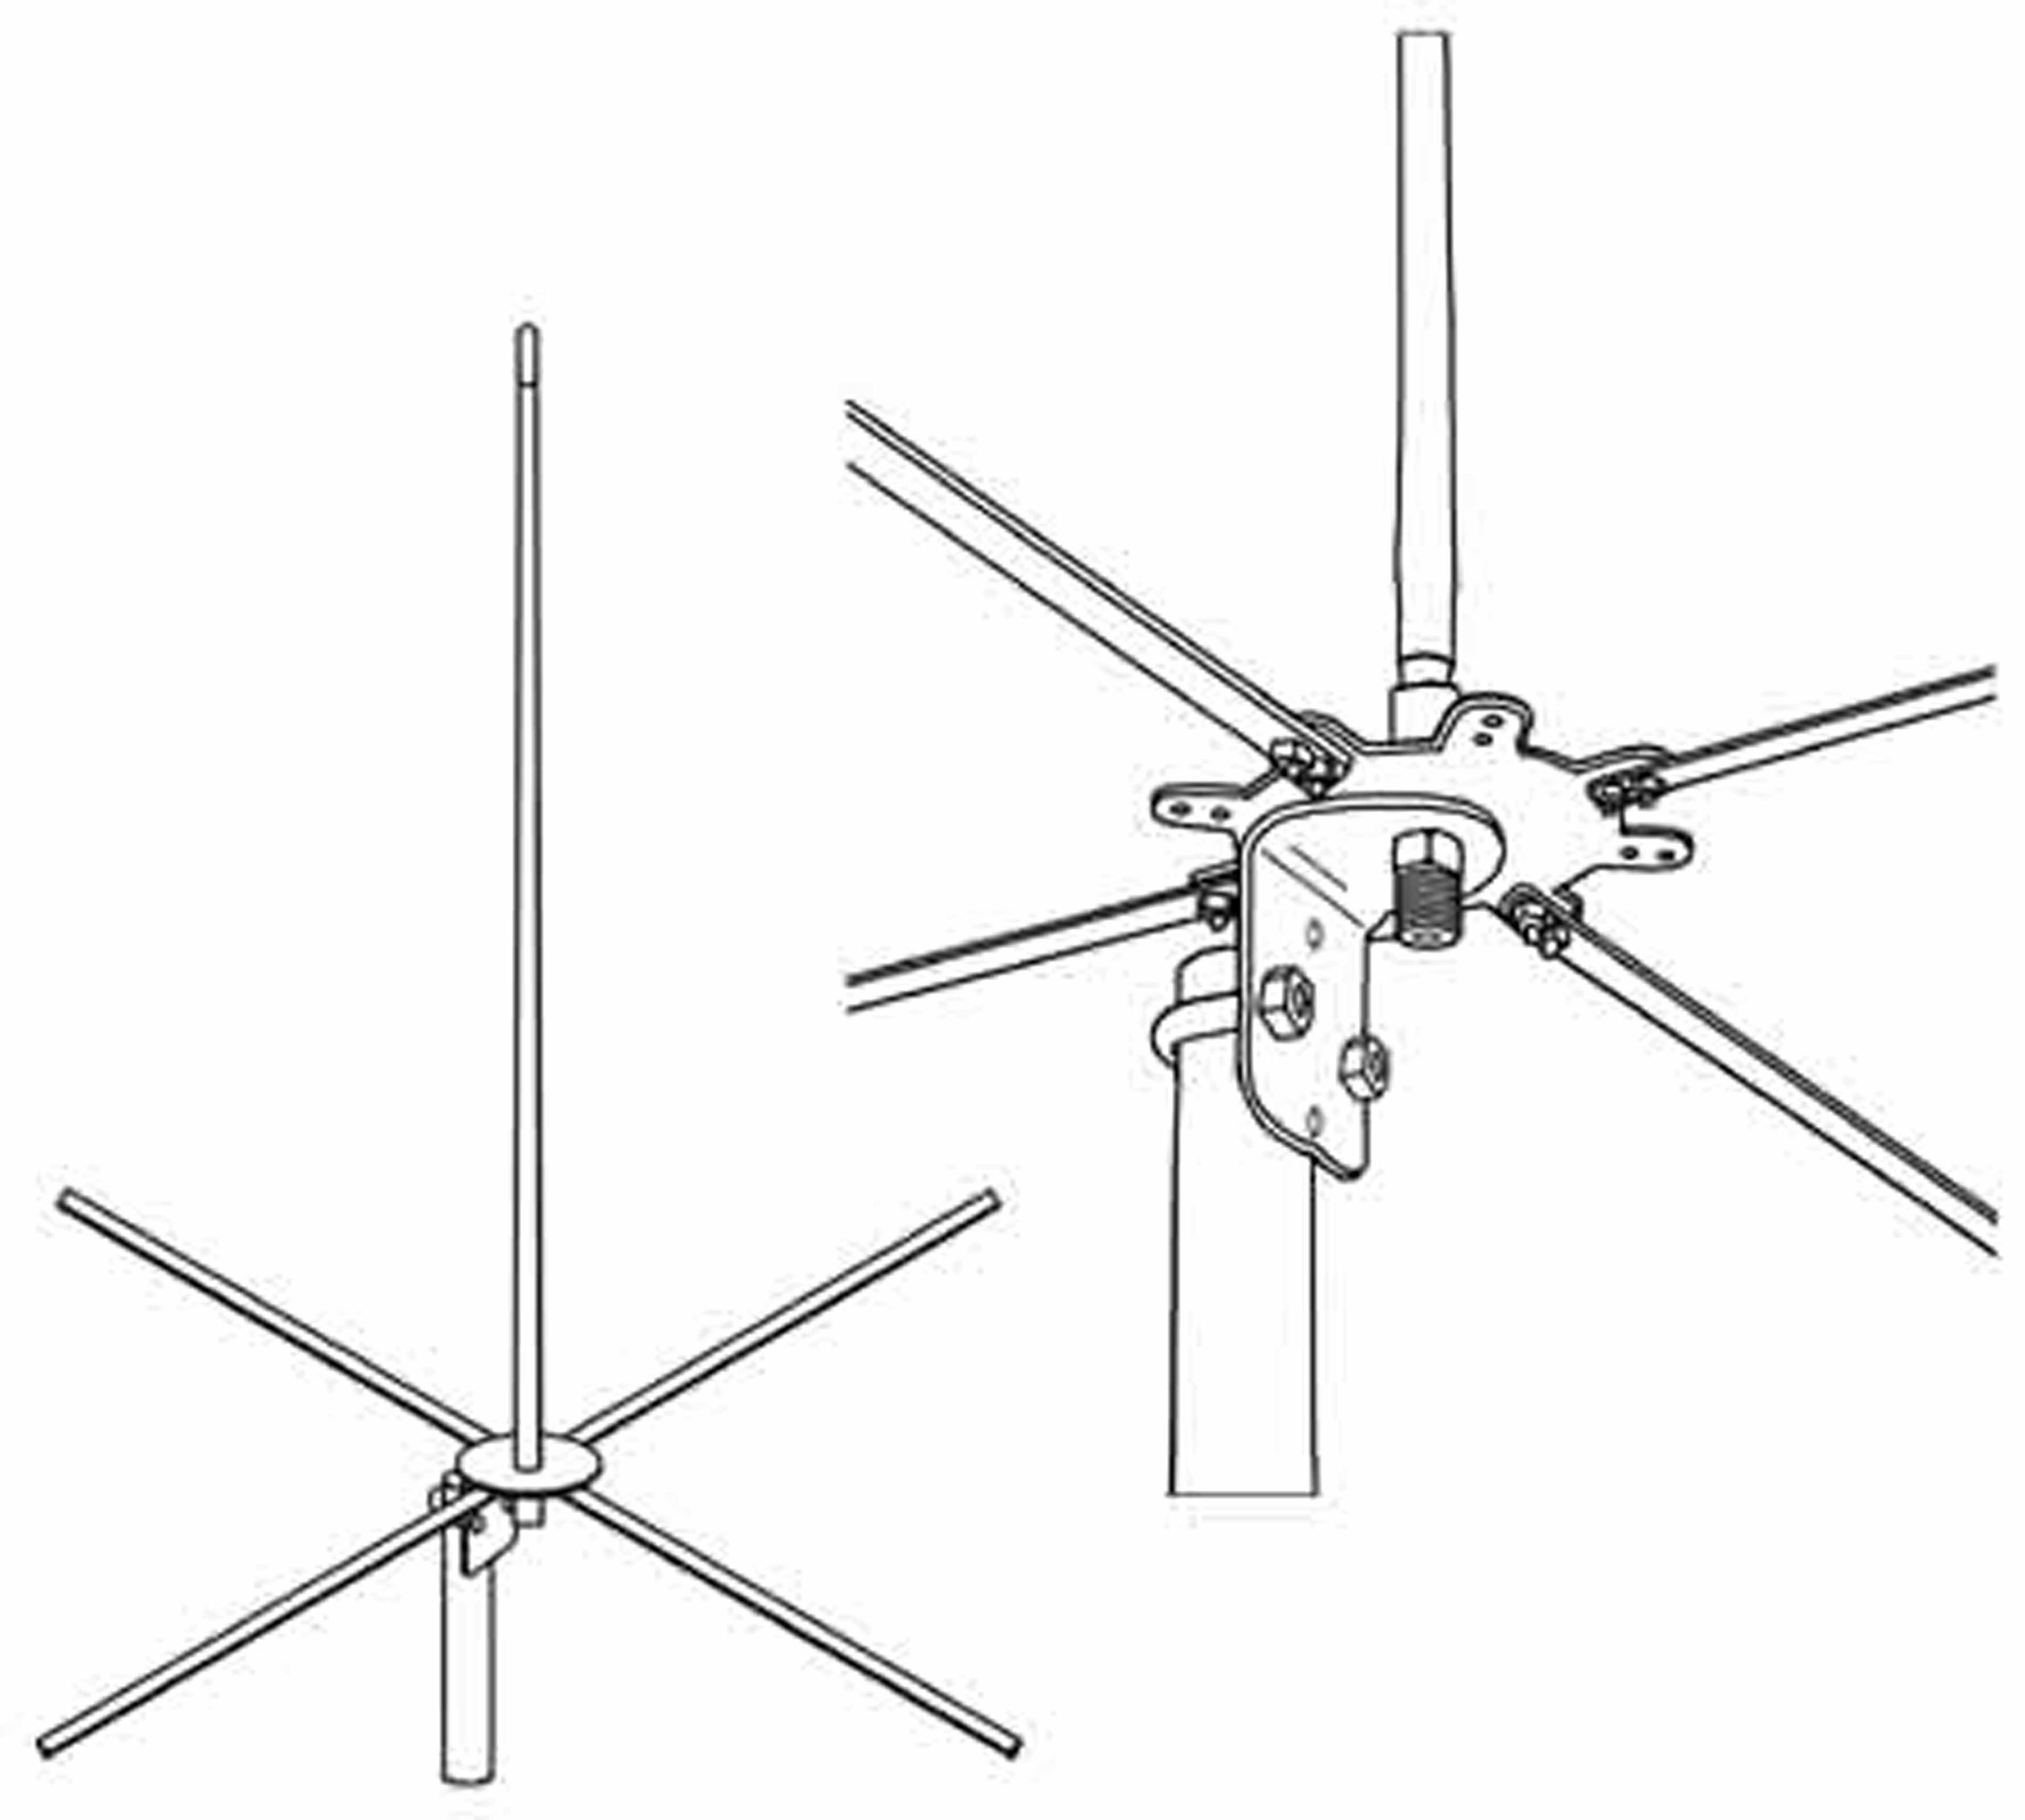 RRBASE - Firestik RailRoad Base Station Antenna Kit